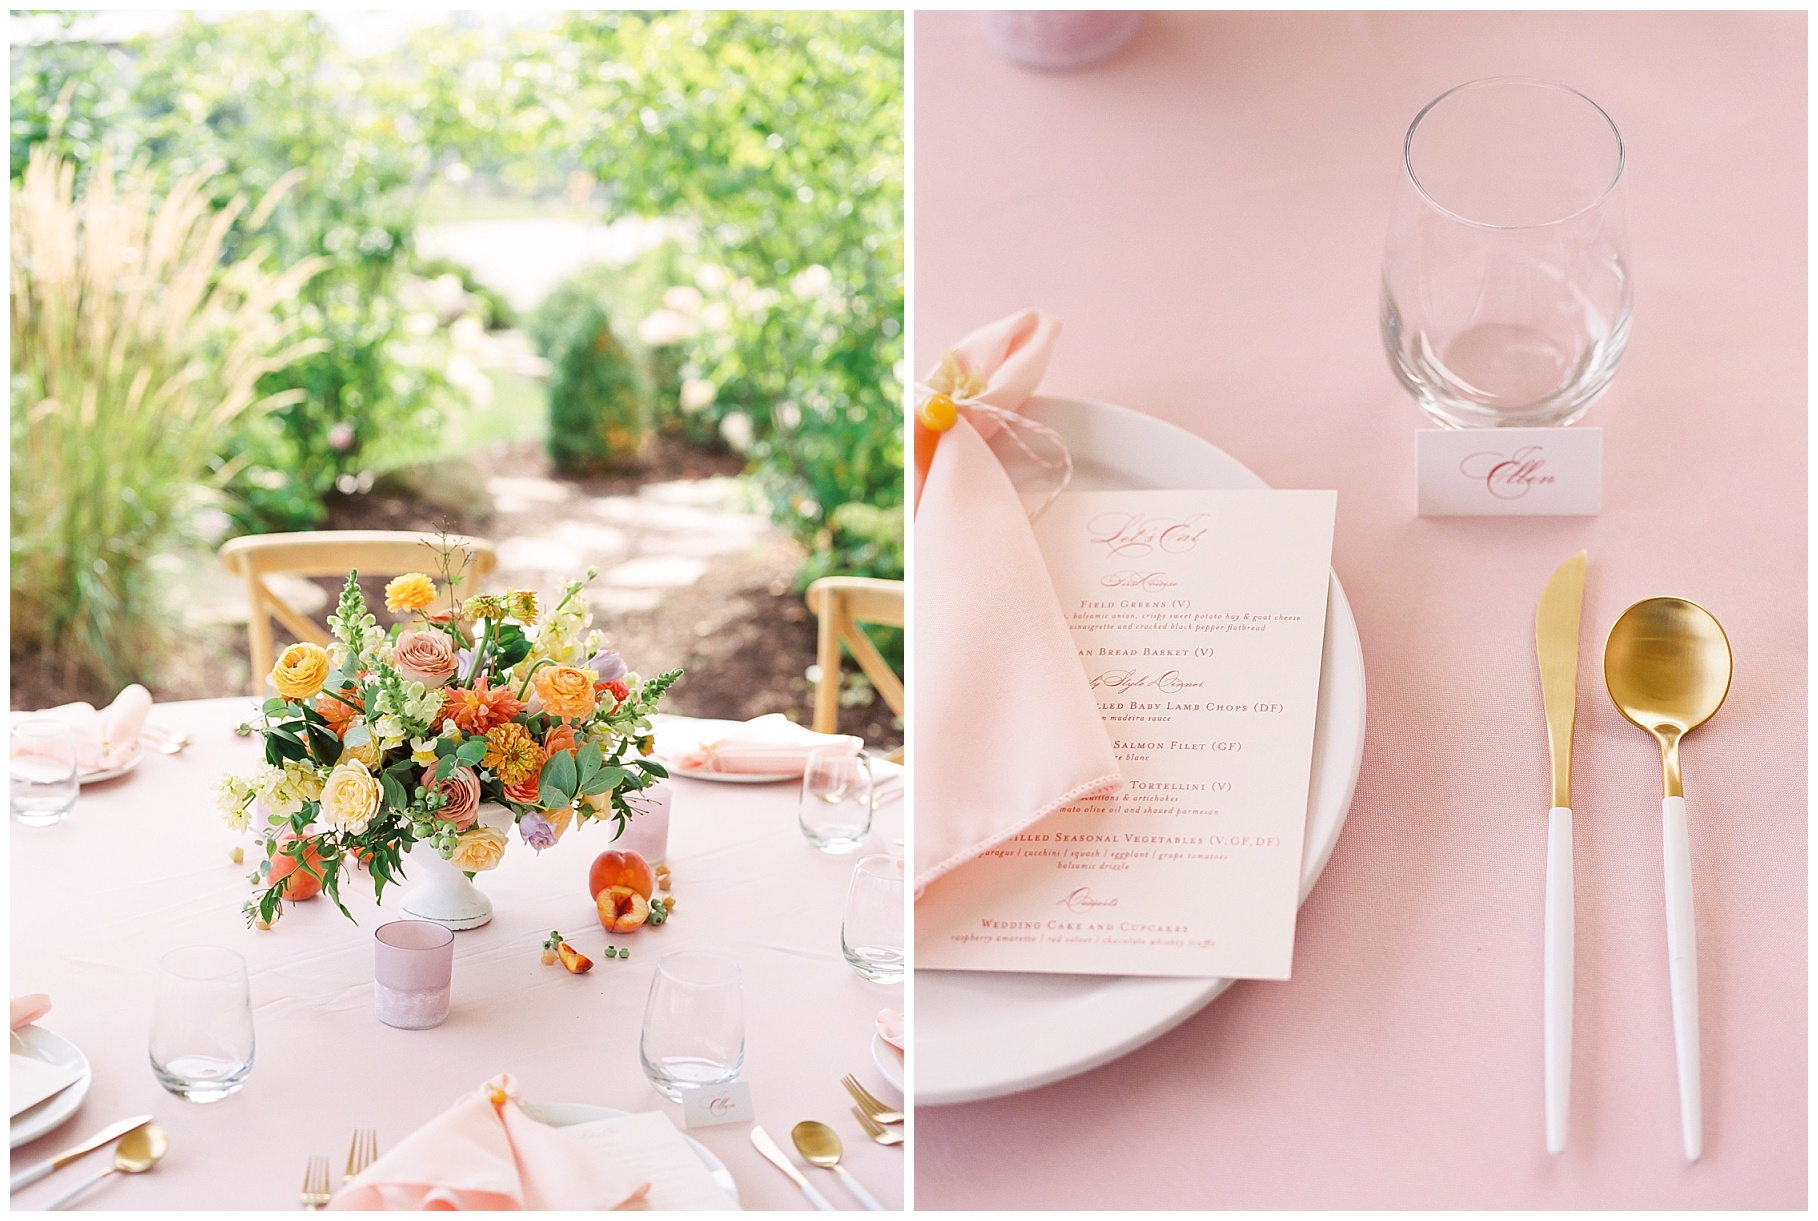 Late Summer Wedding With Pastel Toned Soiree at Blue Bell Farm by Kelsi Kliethermes Photography Best Columbia Missouri Wedding Photographer_0062.jpg